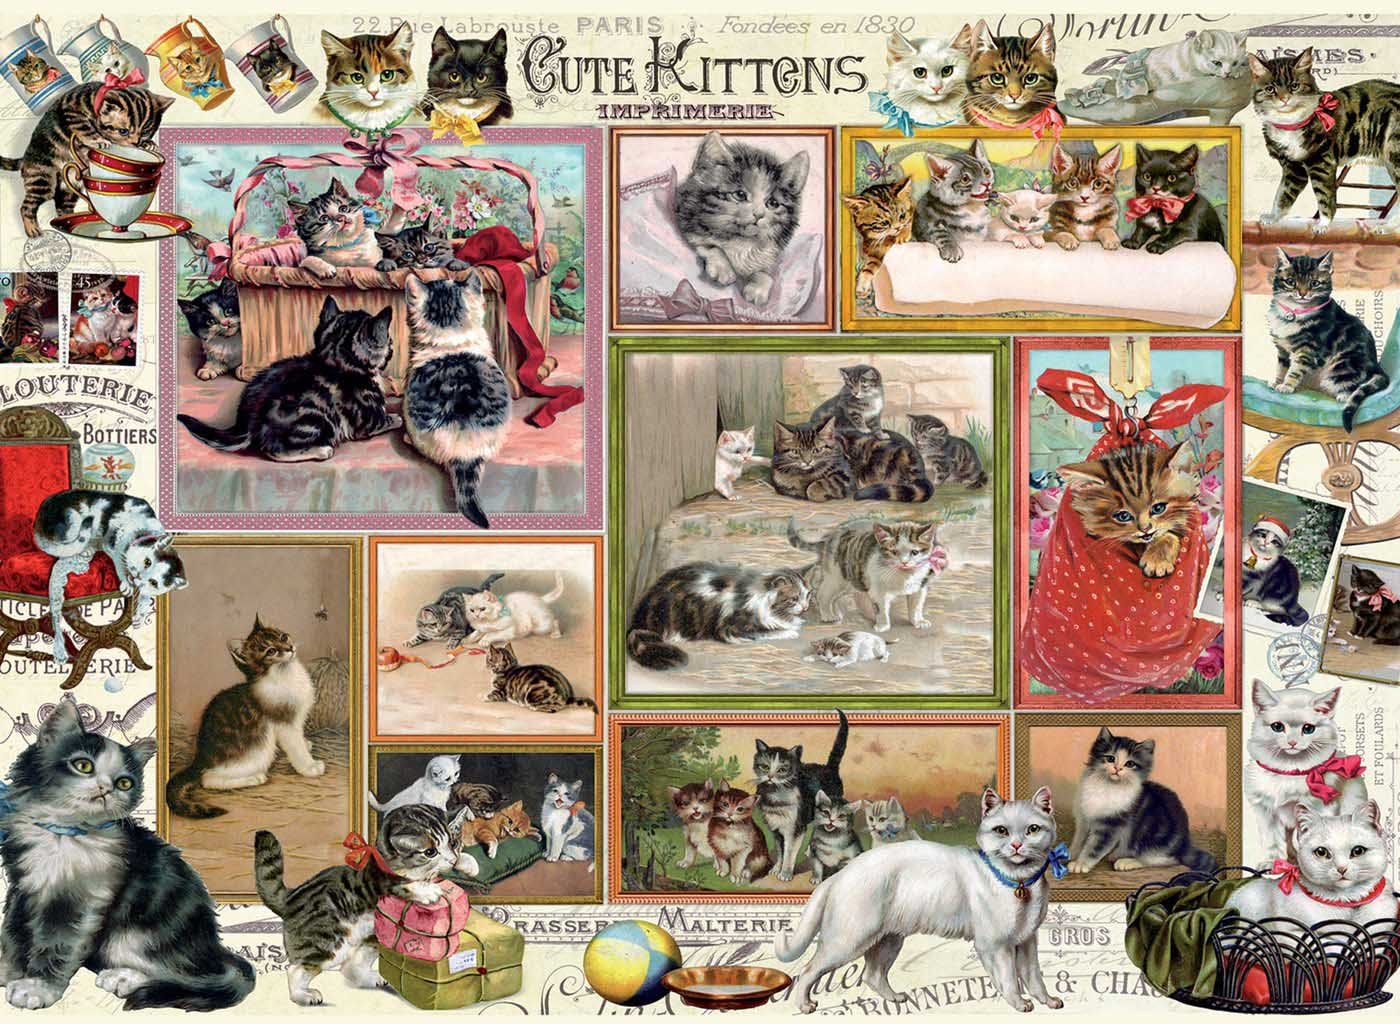 Cute Kittens & Comical Dogs Cats Jigsaw Puzzle